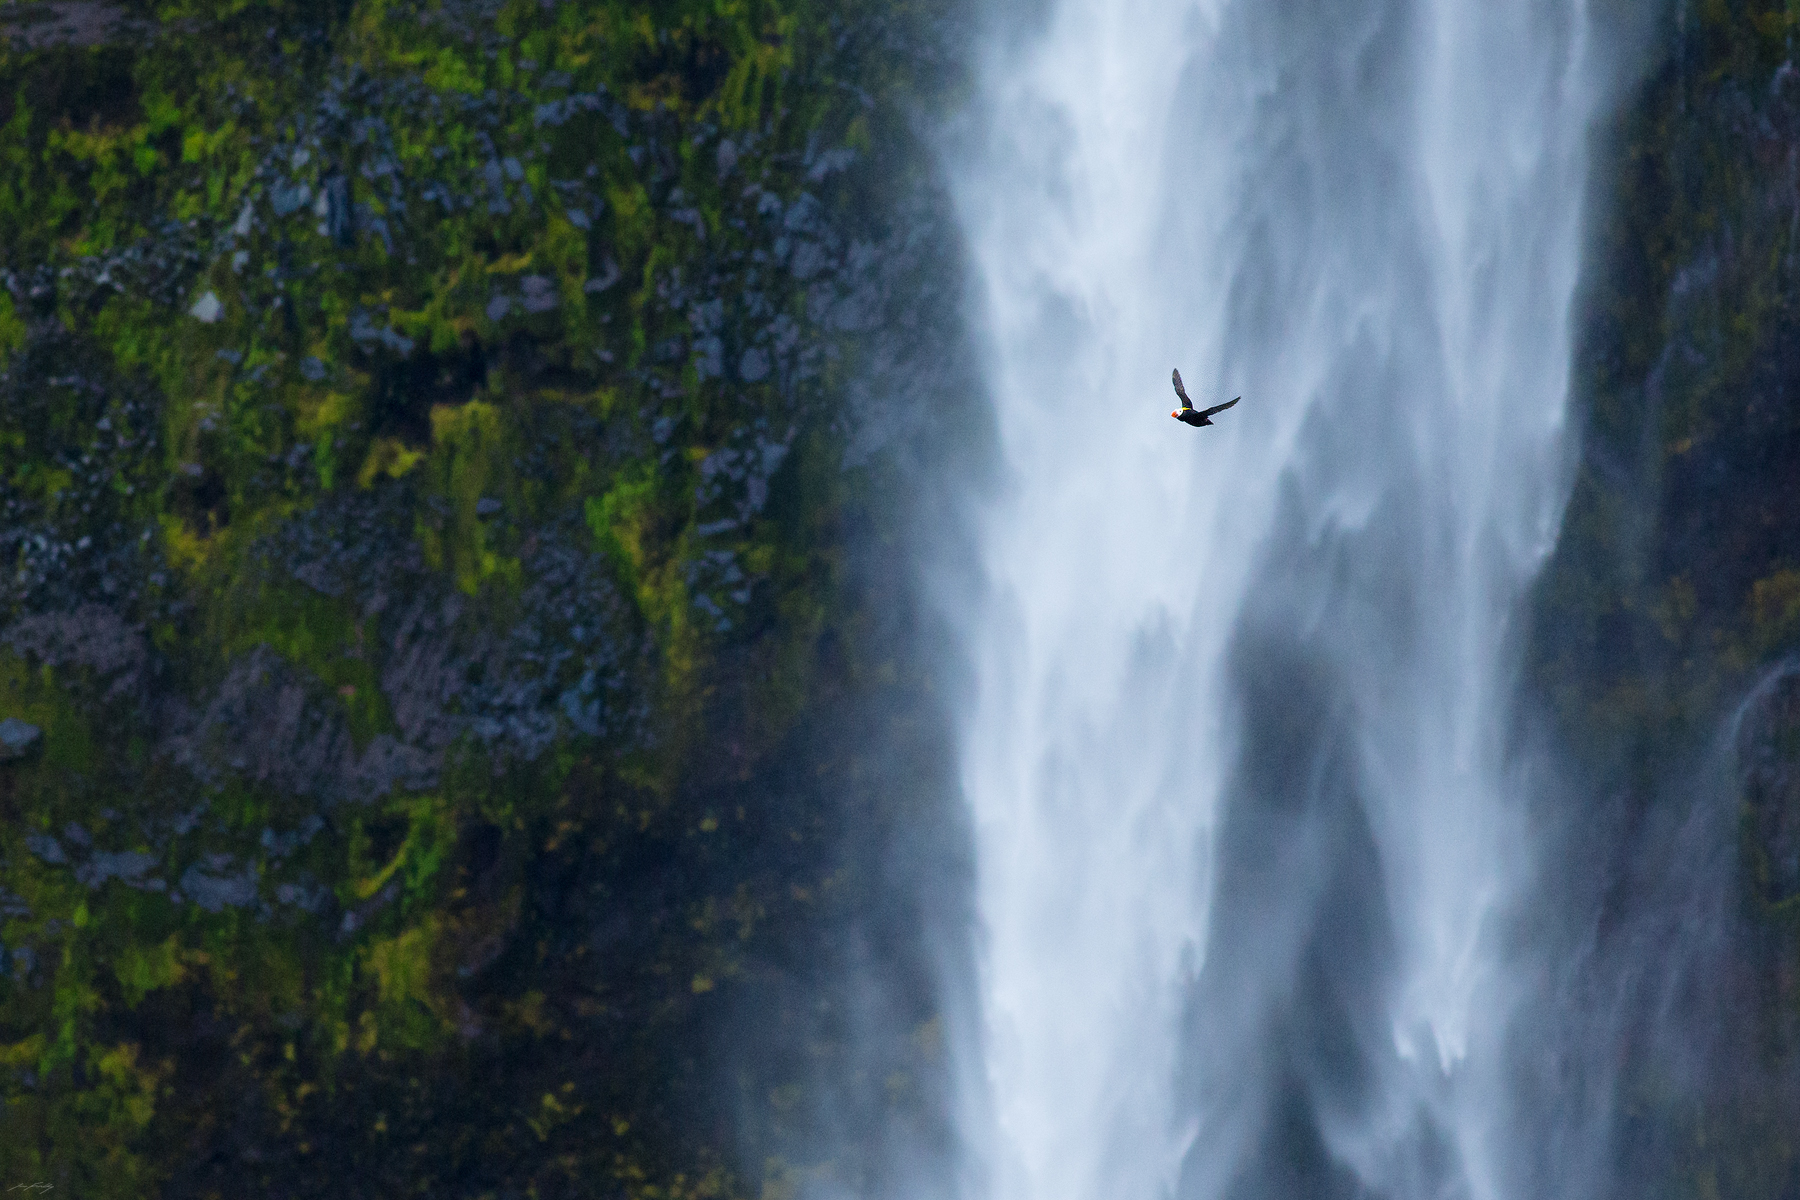 A Tufted Puffin in flight. Beyond, a large waterfall plunges down the steep coastal cliffs of Amlia Island.